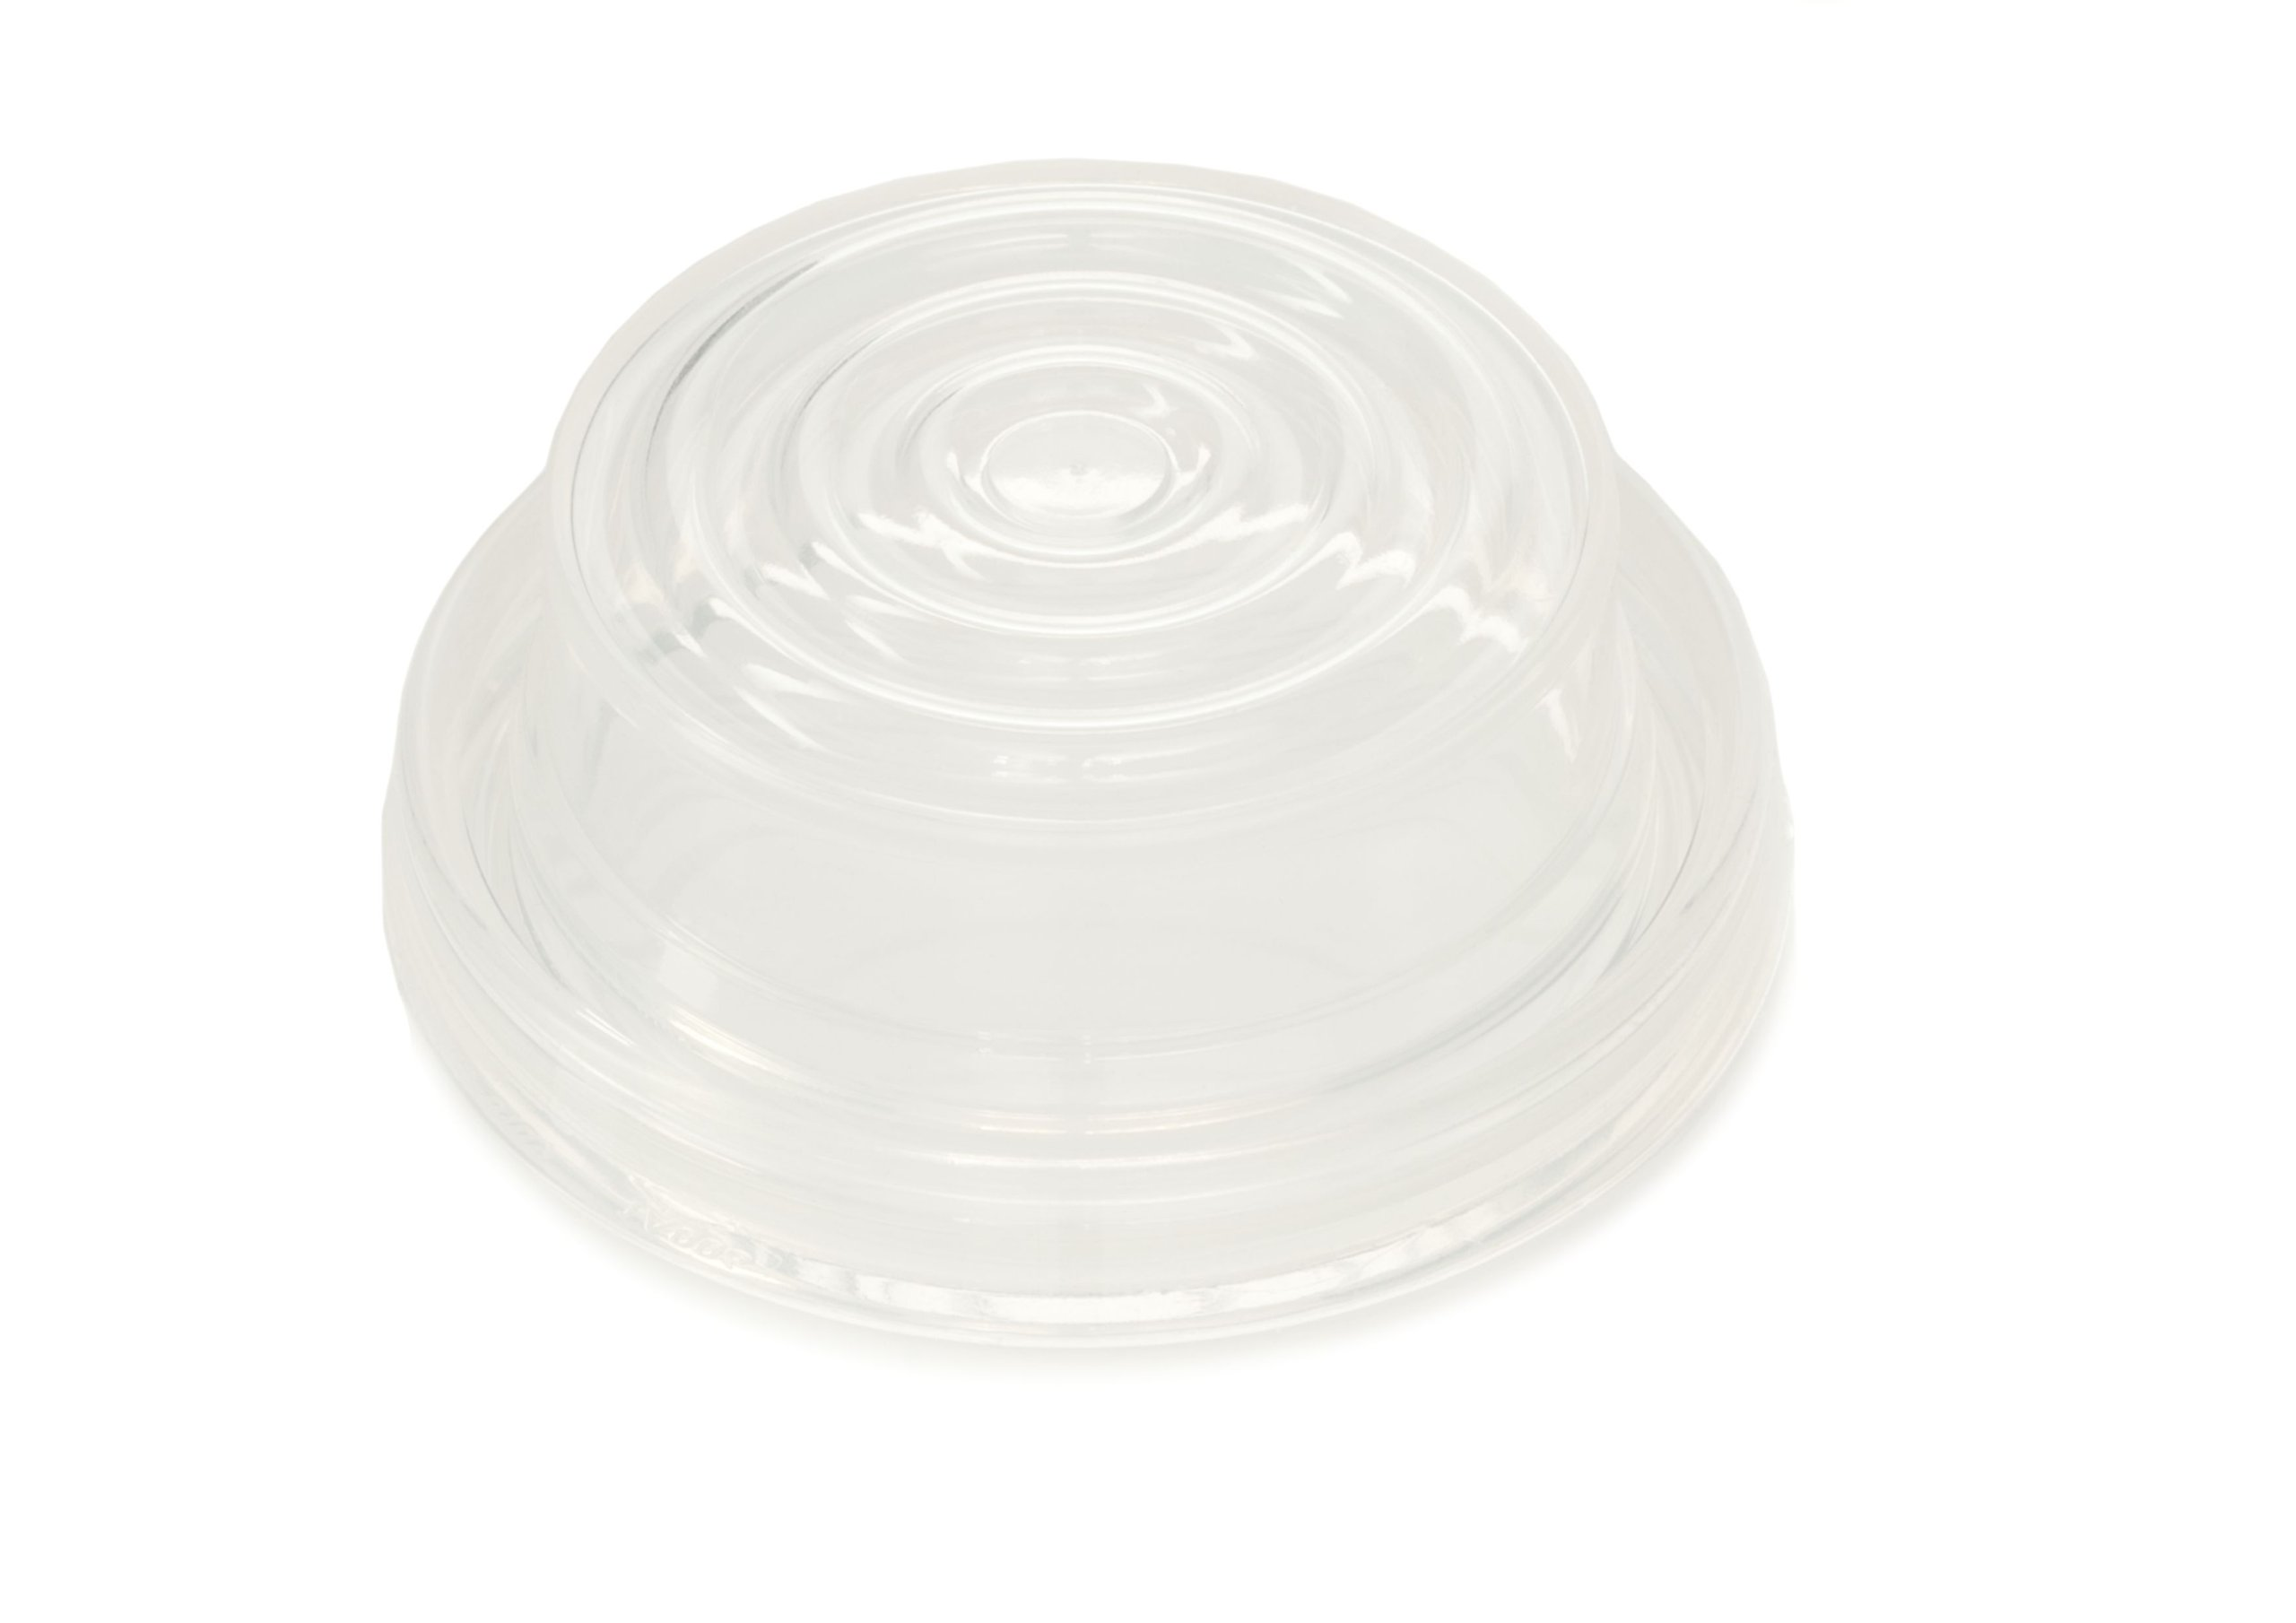 Philips AVENT Comfort Breast Pump Diaphragm for Manual Pumps by Philips AVENT